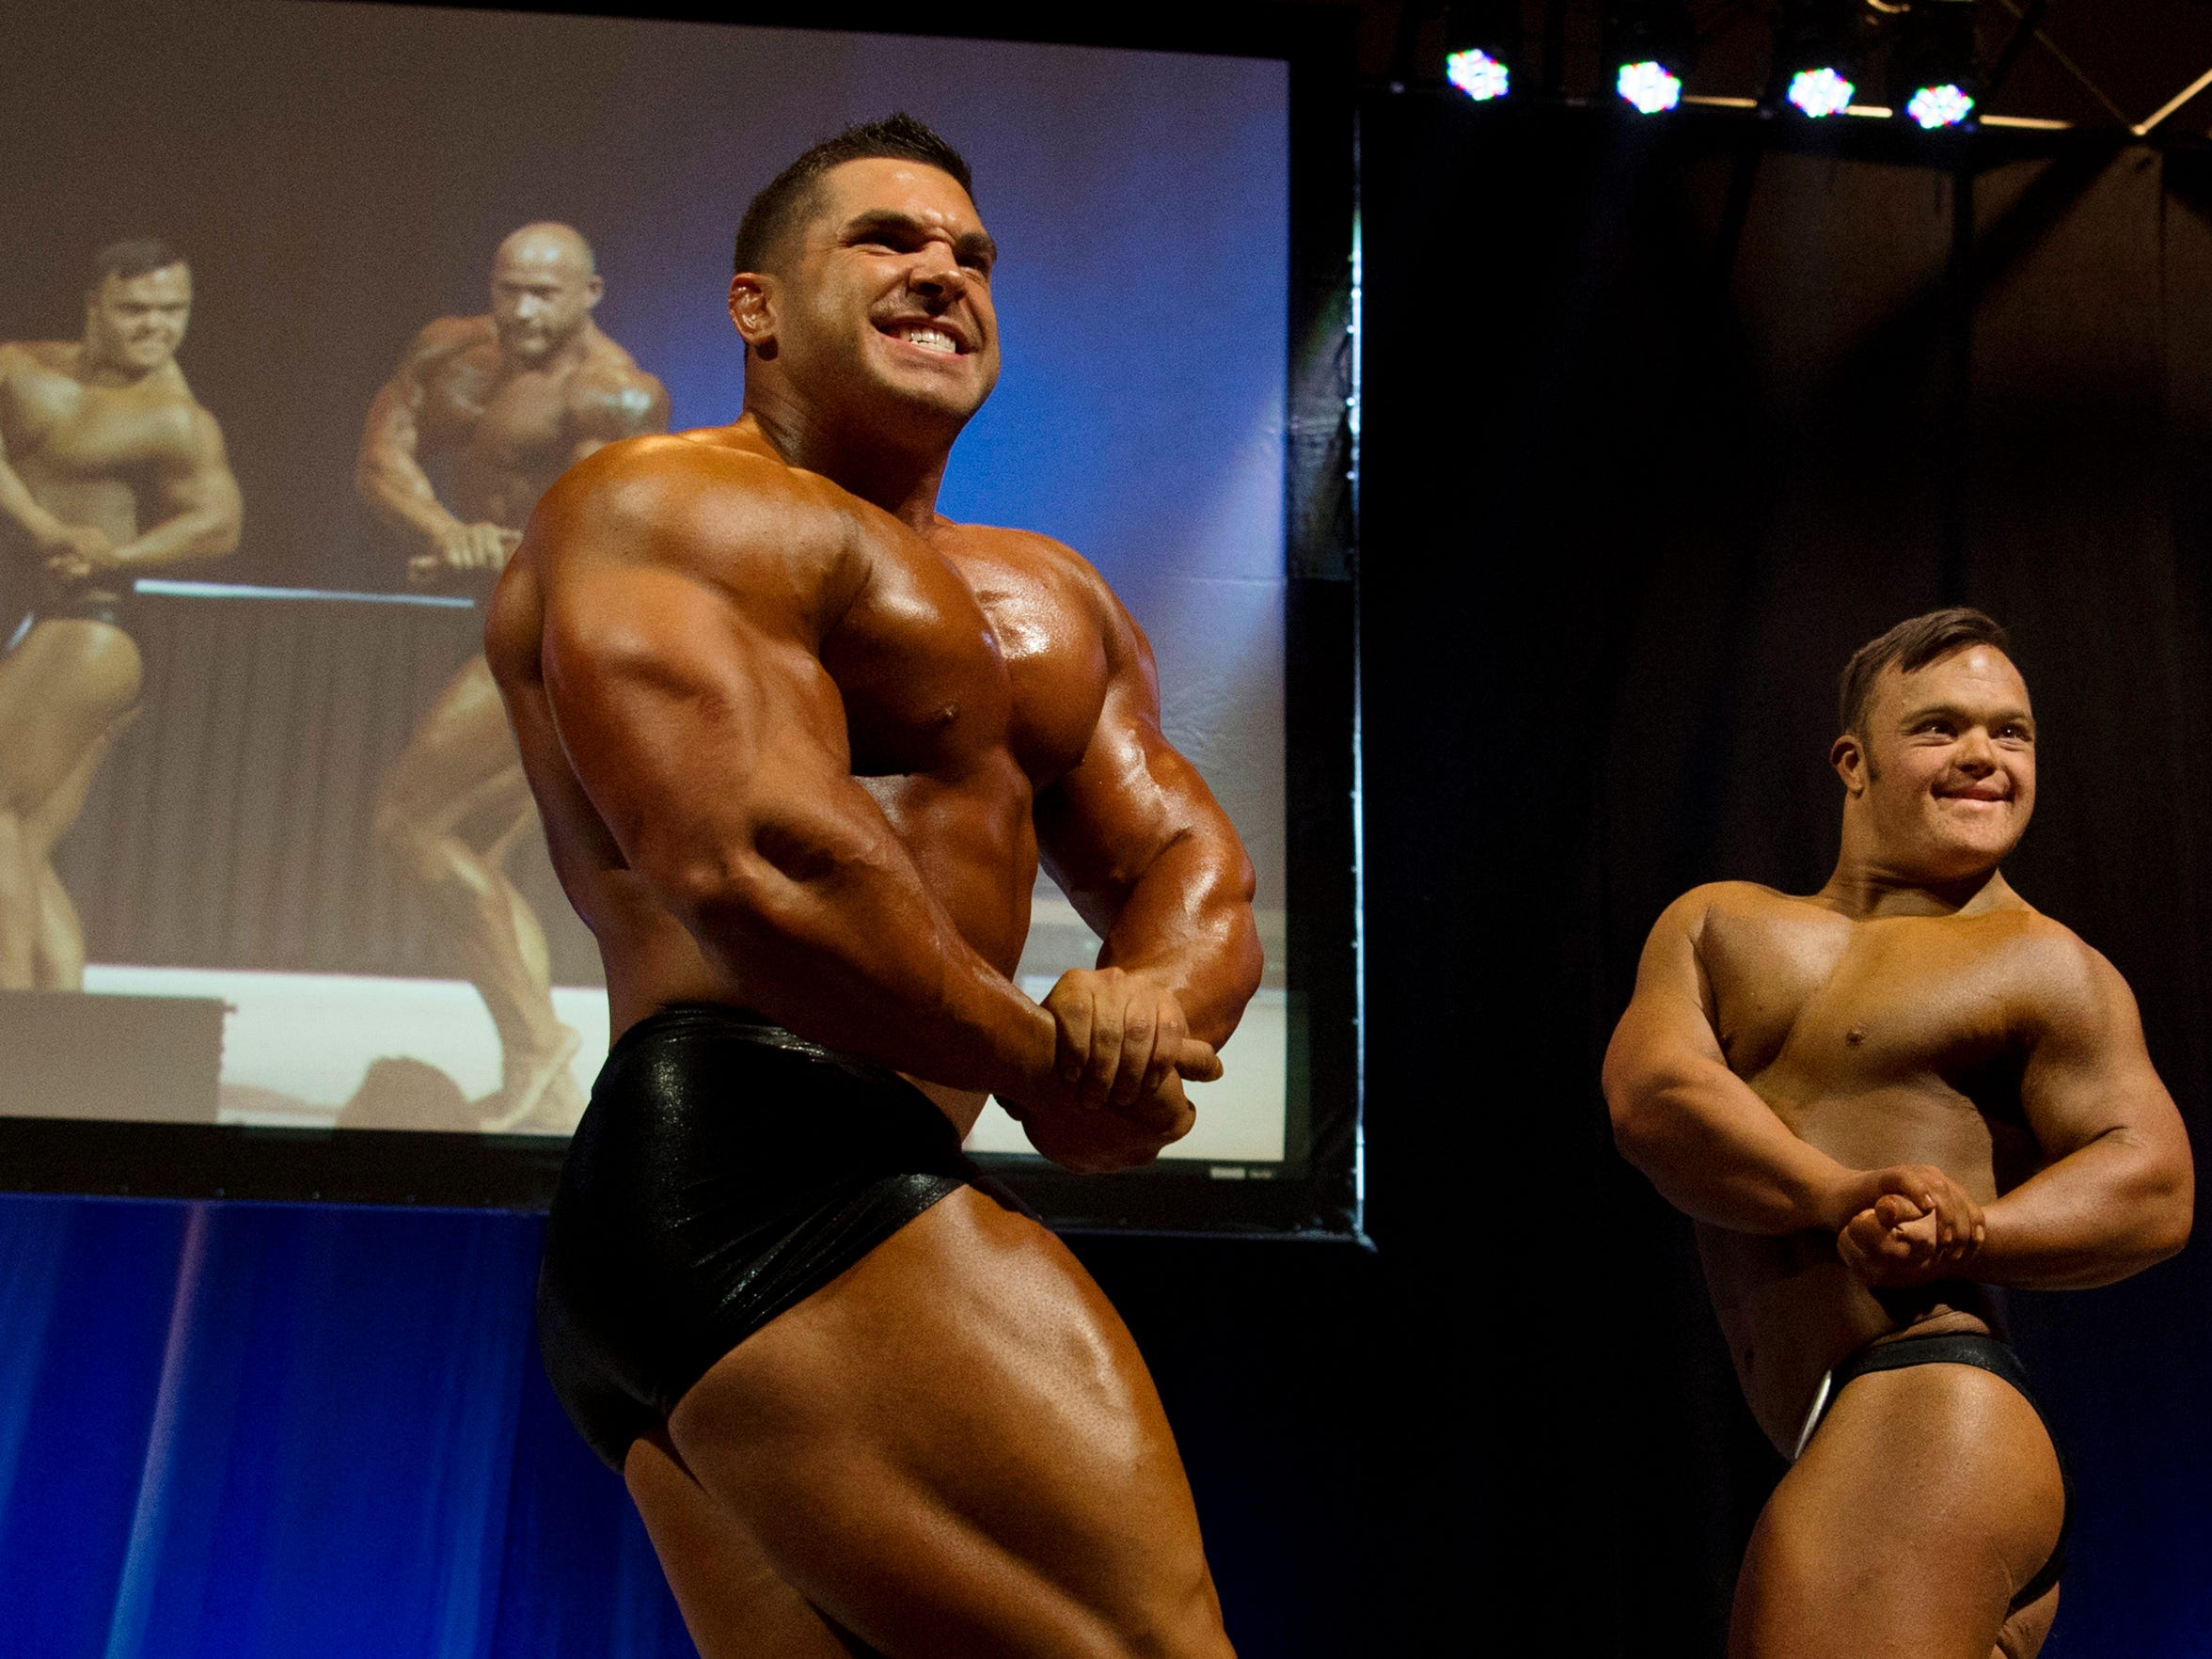 Professional bodybuilder Derek Lunsford and Collin